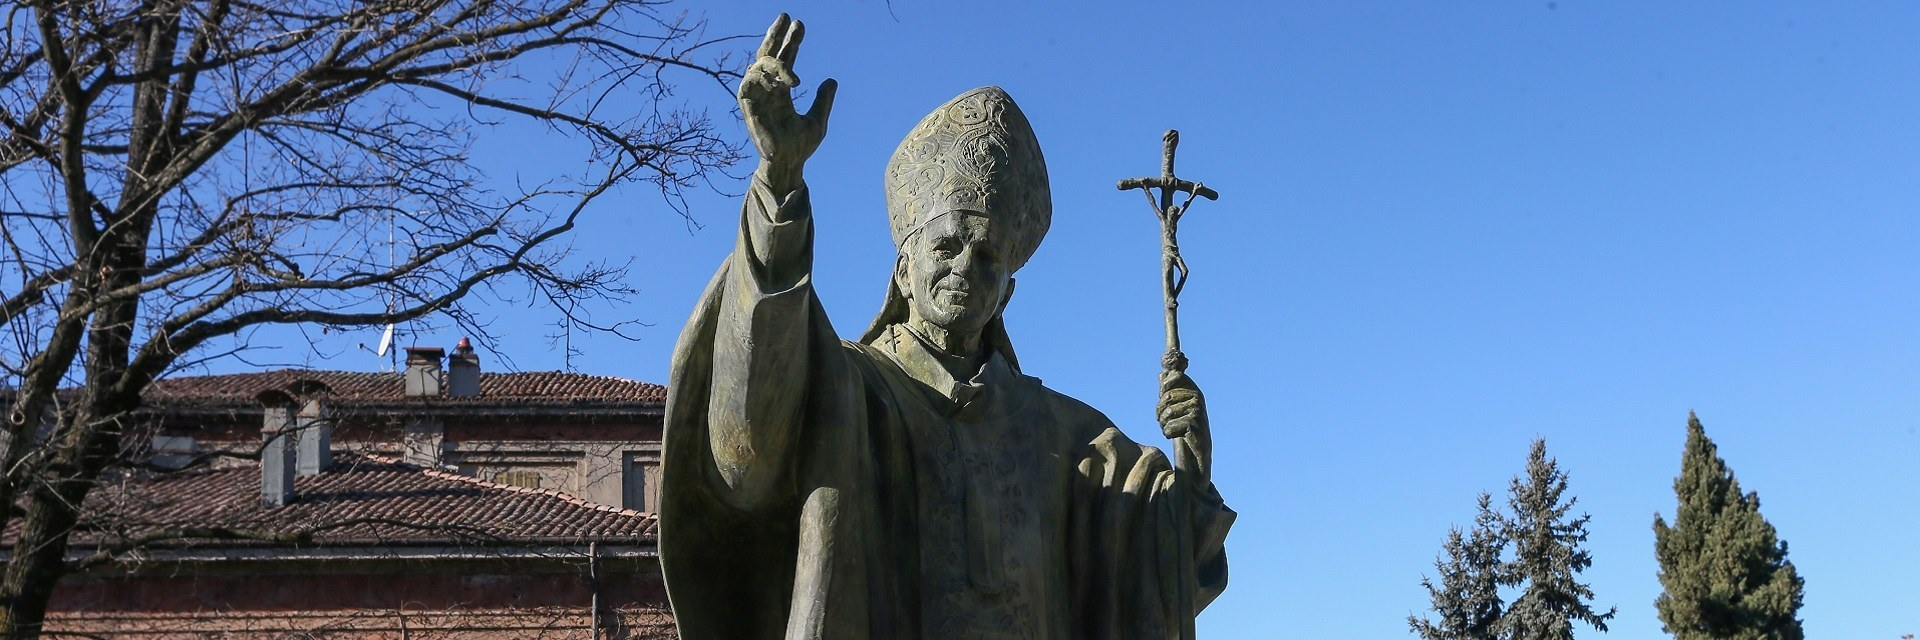 The statue of John Paul II